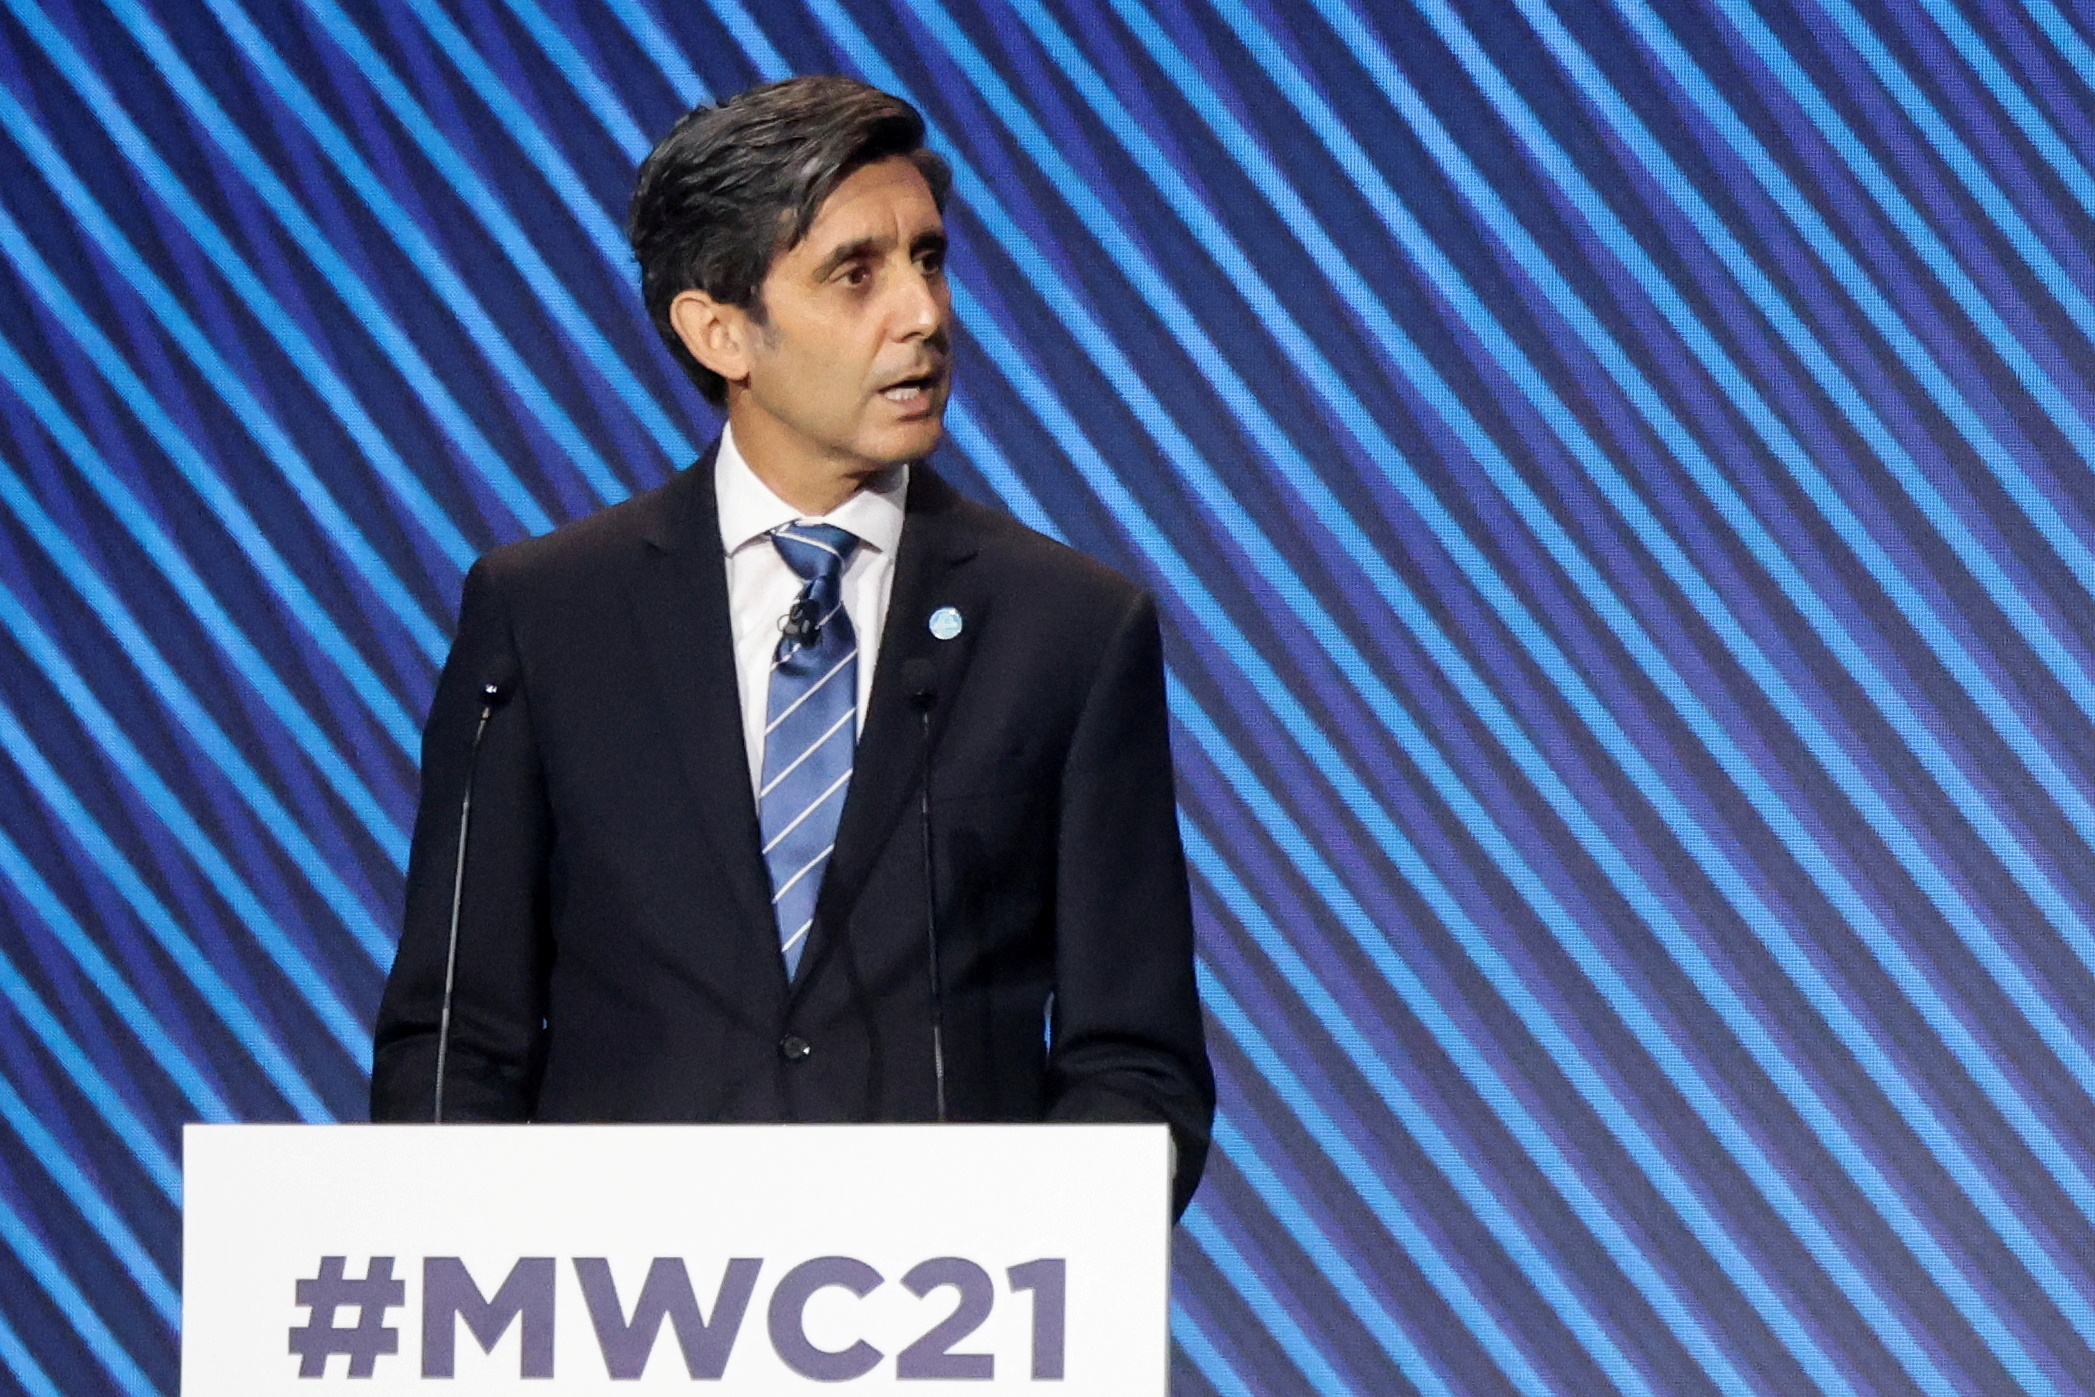 Telefonica's Chairman and CEO Jose Maria Alvarez-Pallete speaks during the Mobile World Congress (MWC) in Barcelona, Spain, June 28, 2021. REUTERS/Nacho Doce